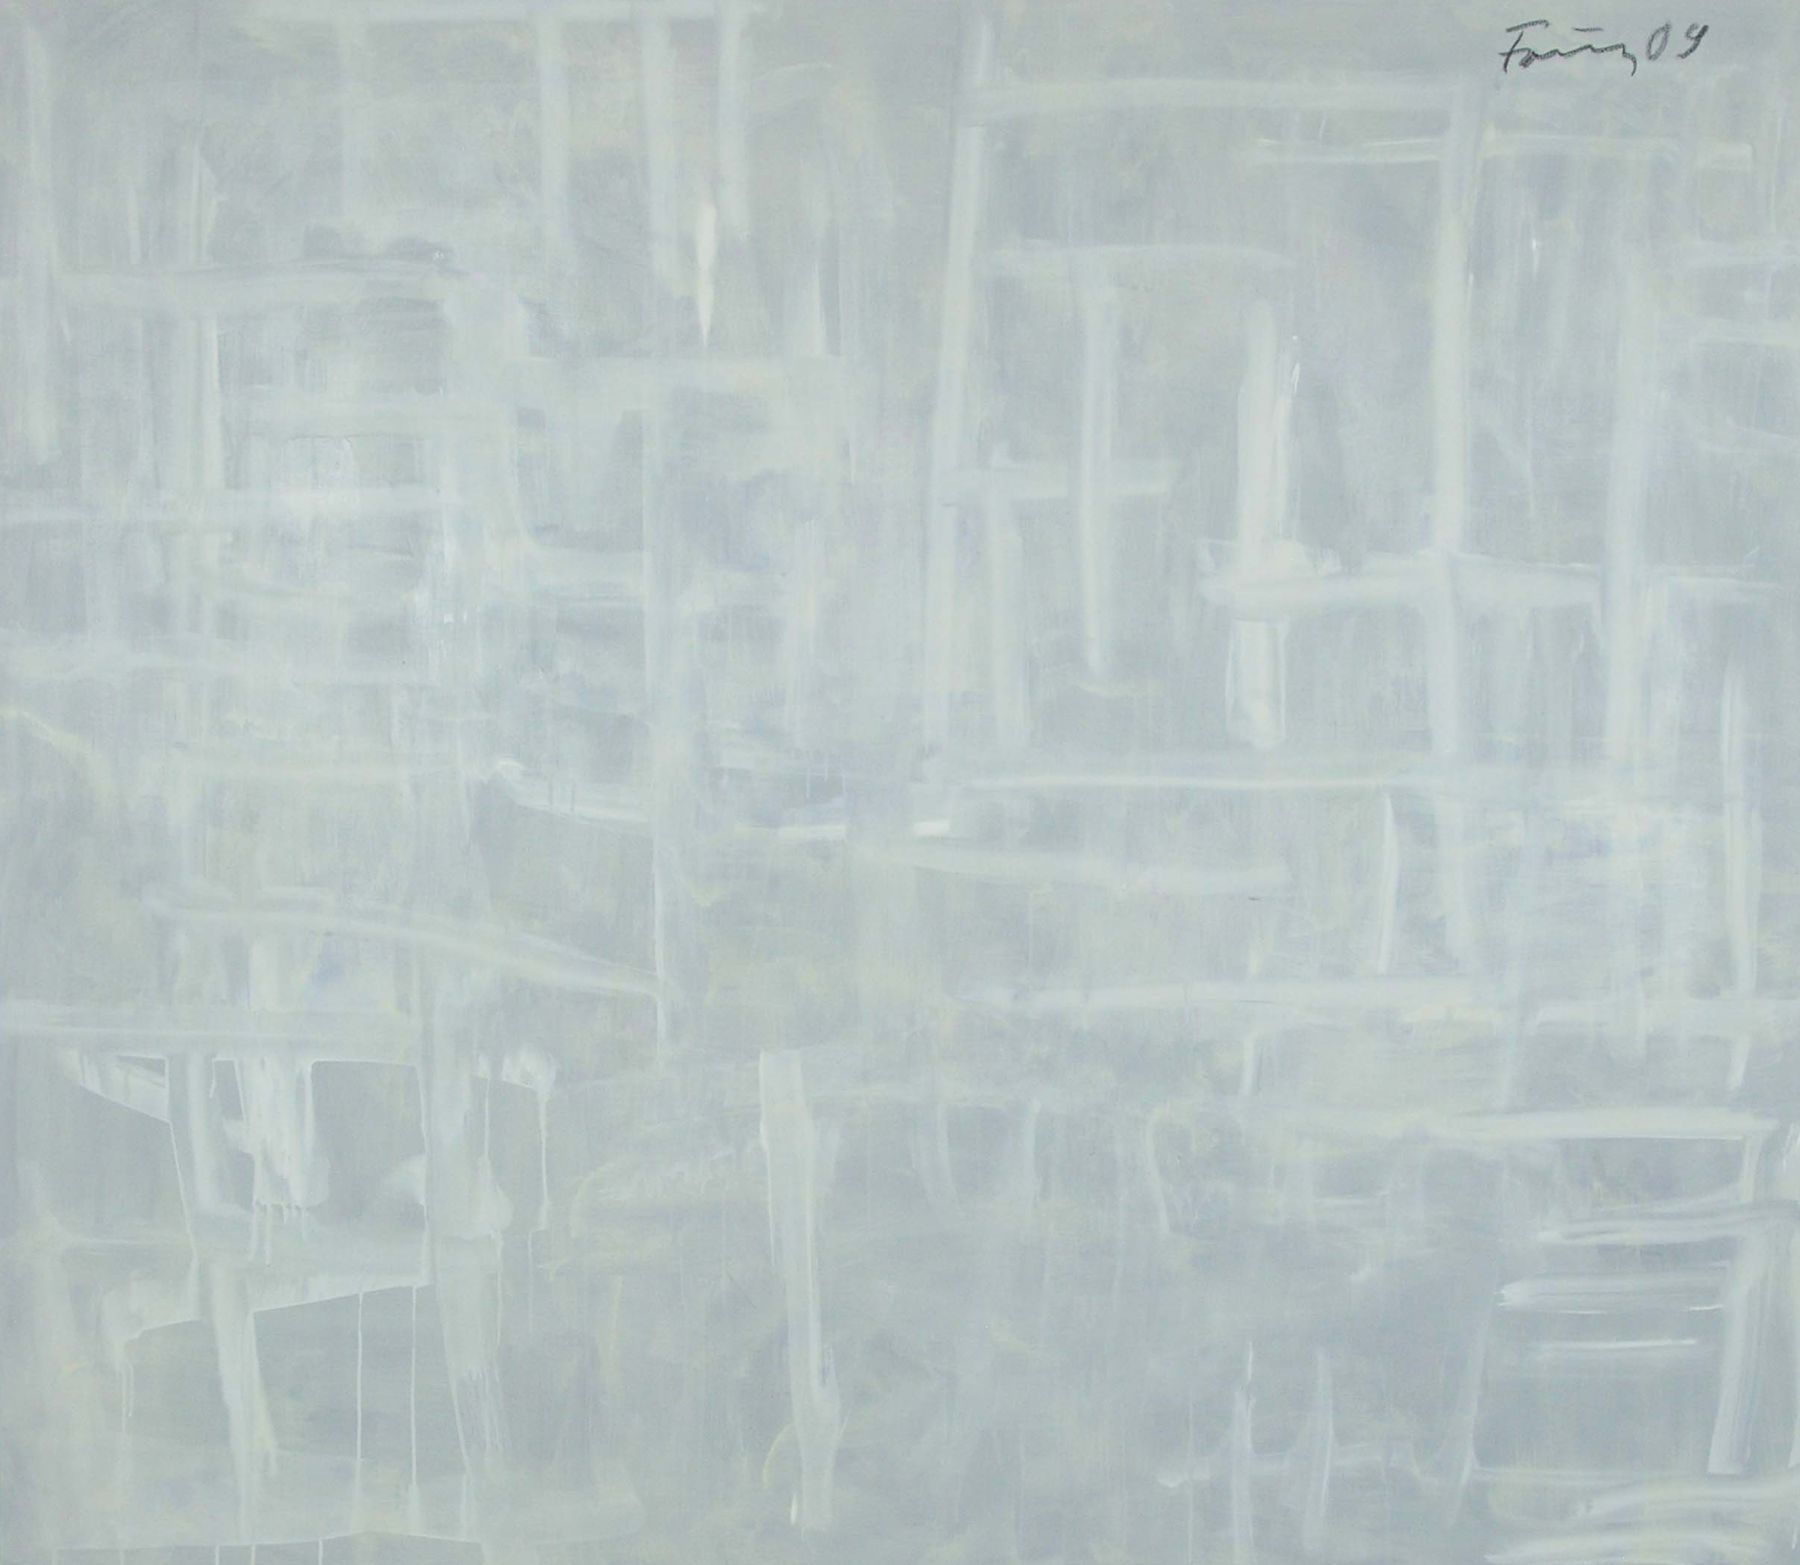 Untitled, 2009, Acrylicon canvas